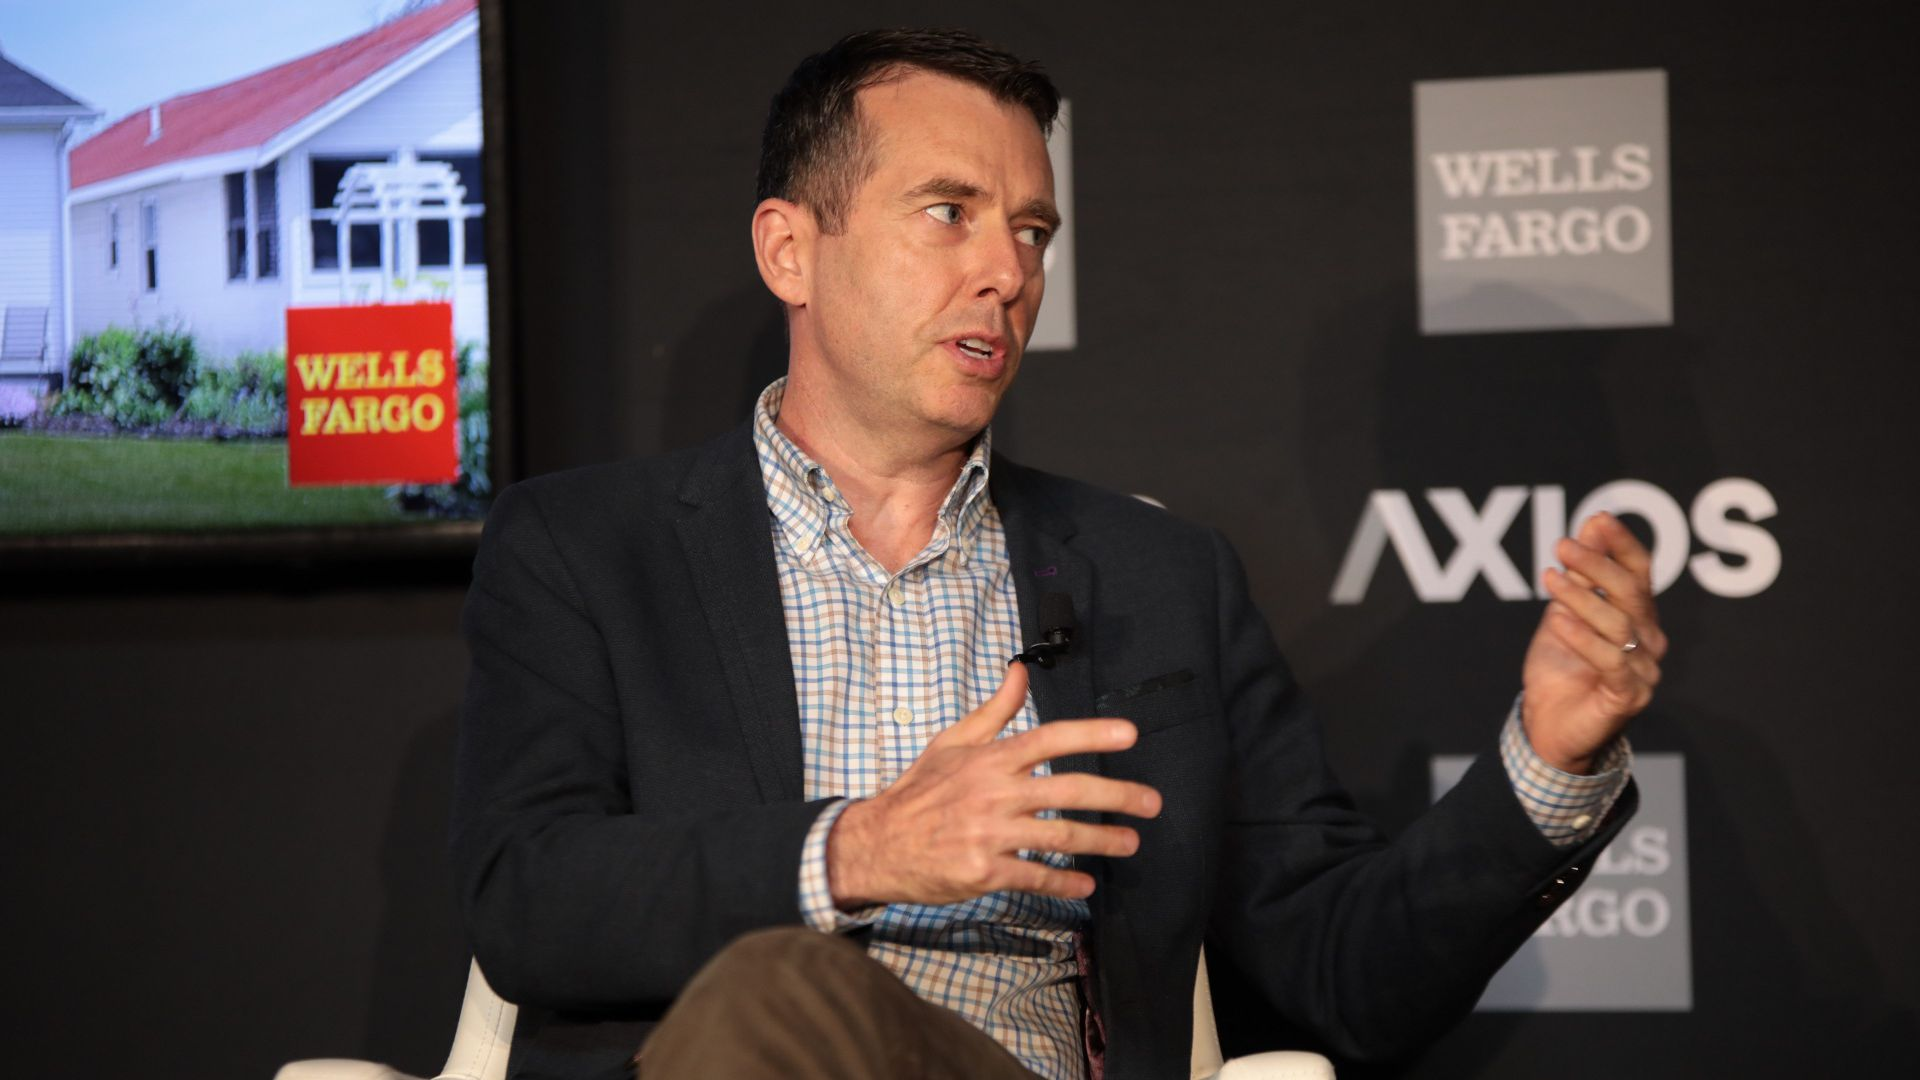 Chan Zuckerberg Initiative President of Policy and Advocacy David Plouffe speaks at an Axios event.